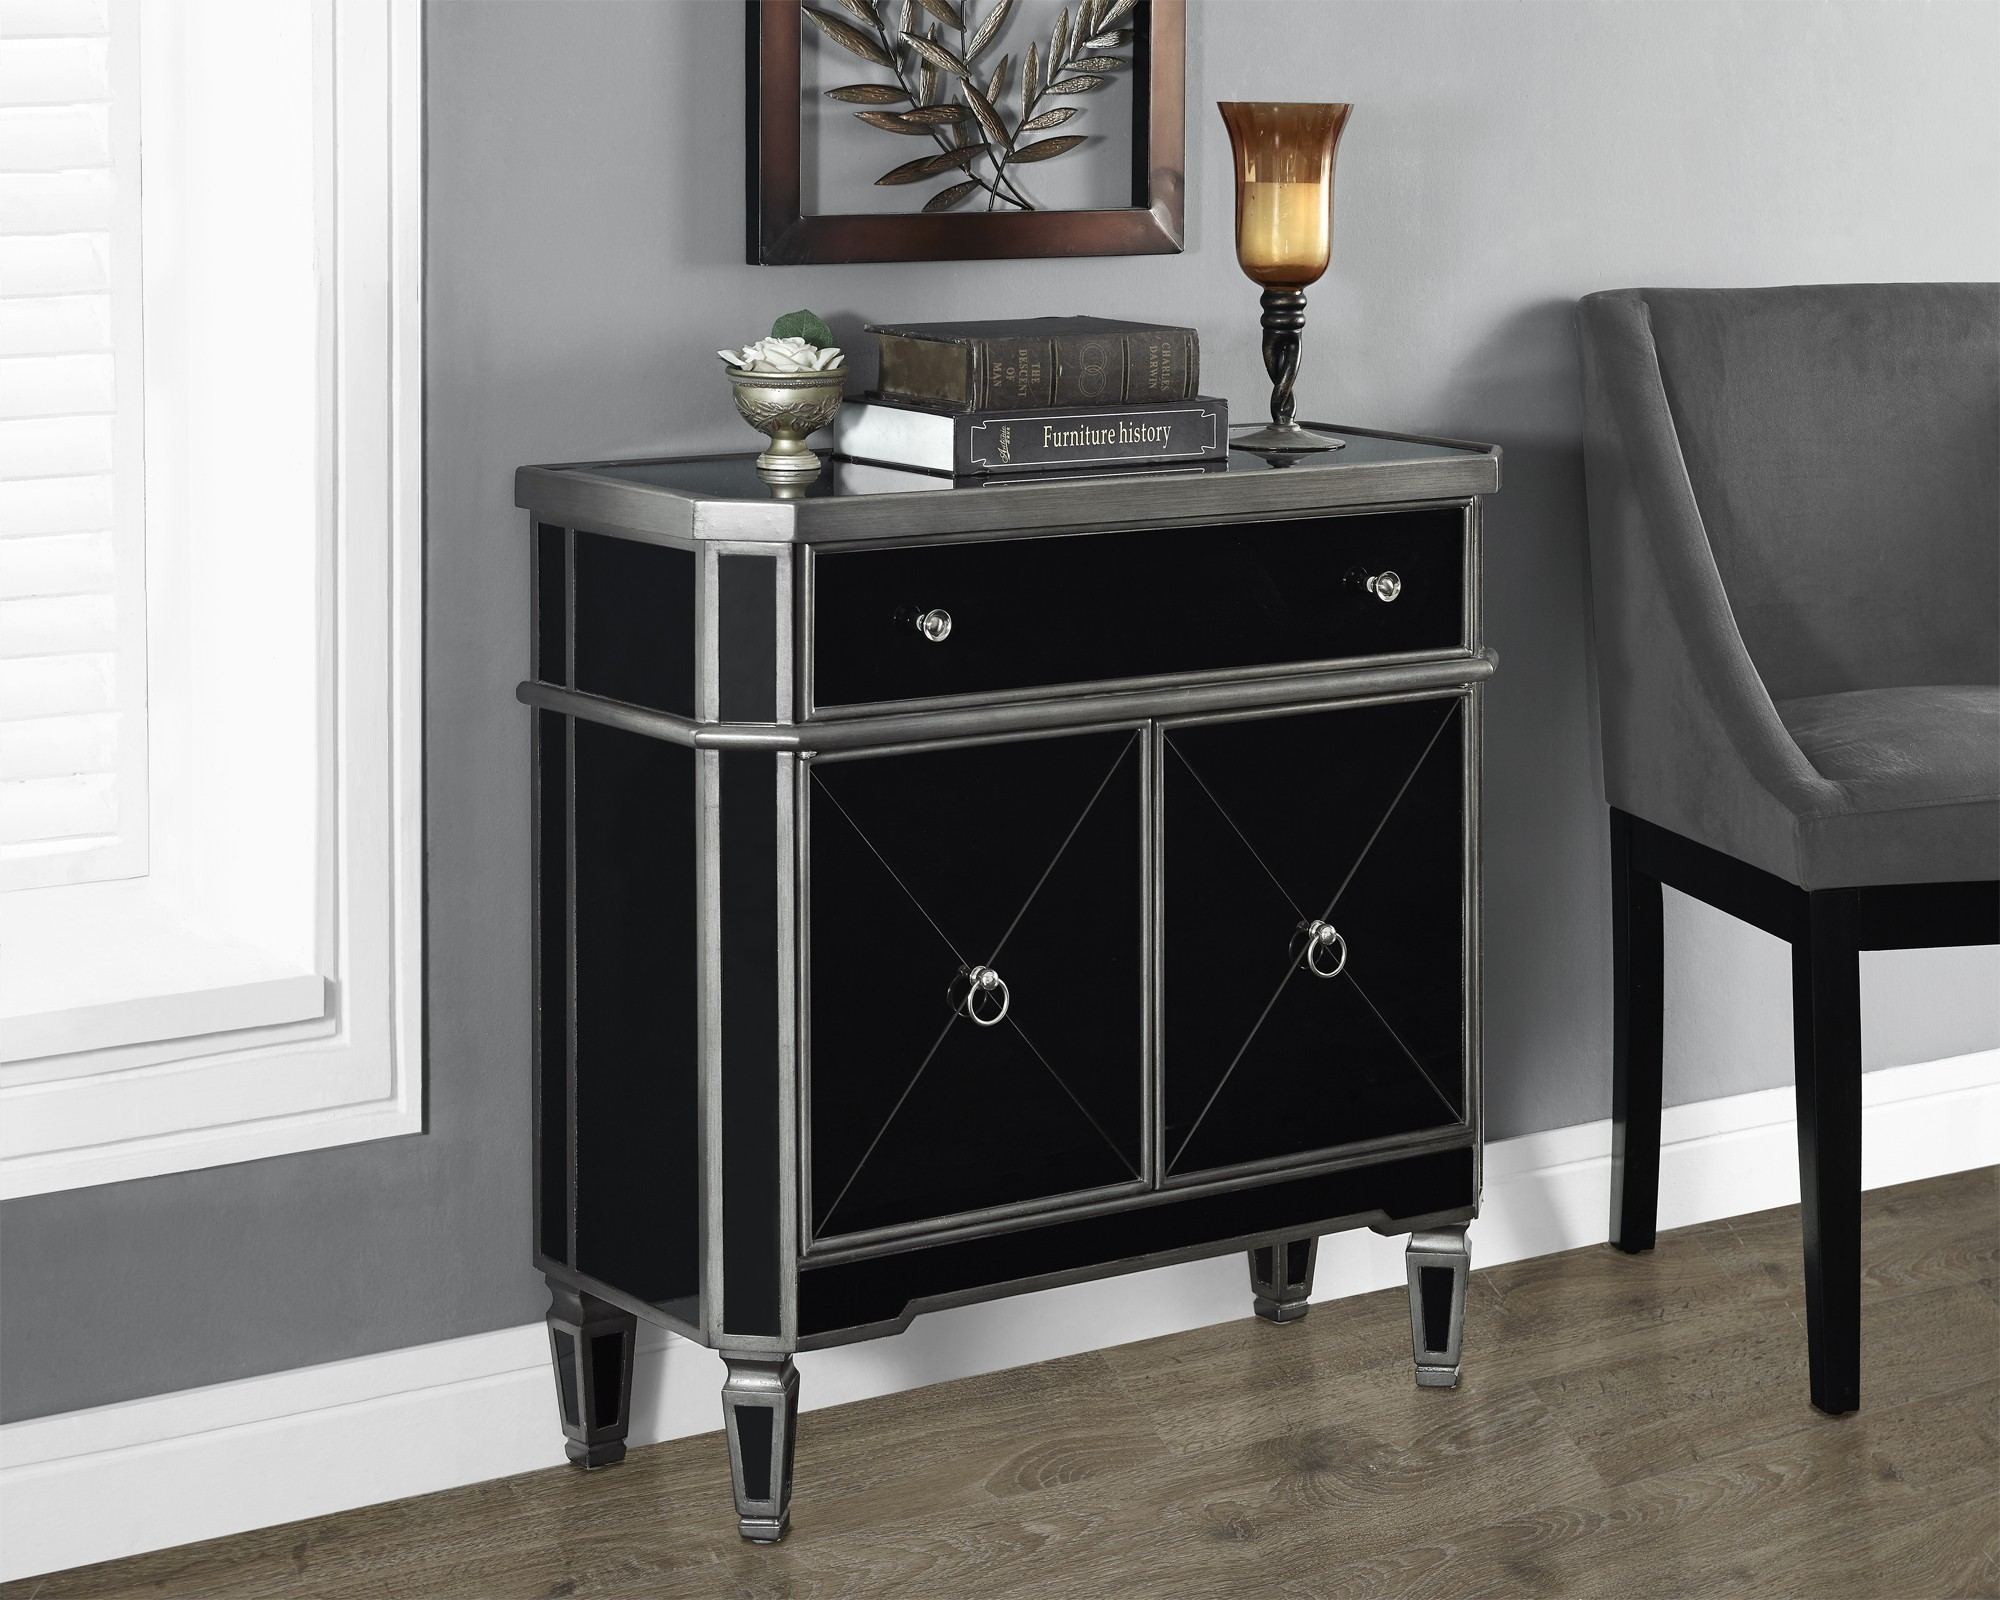 solid black coffee table the fantastic awesome skinny end nightstand round drawer bedside charcoal grey mirrored accent with wooden floor and wall for home decoration ideas gold